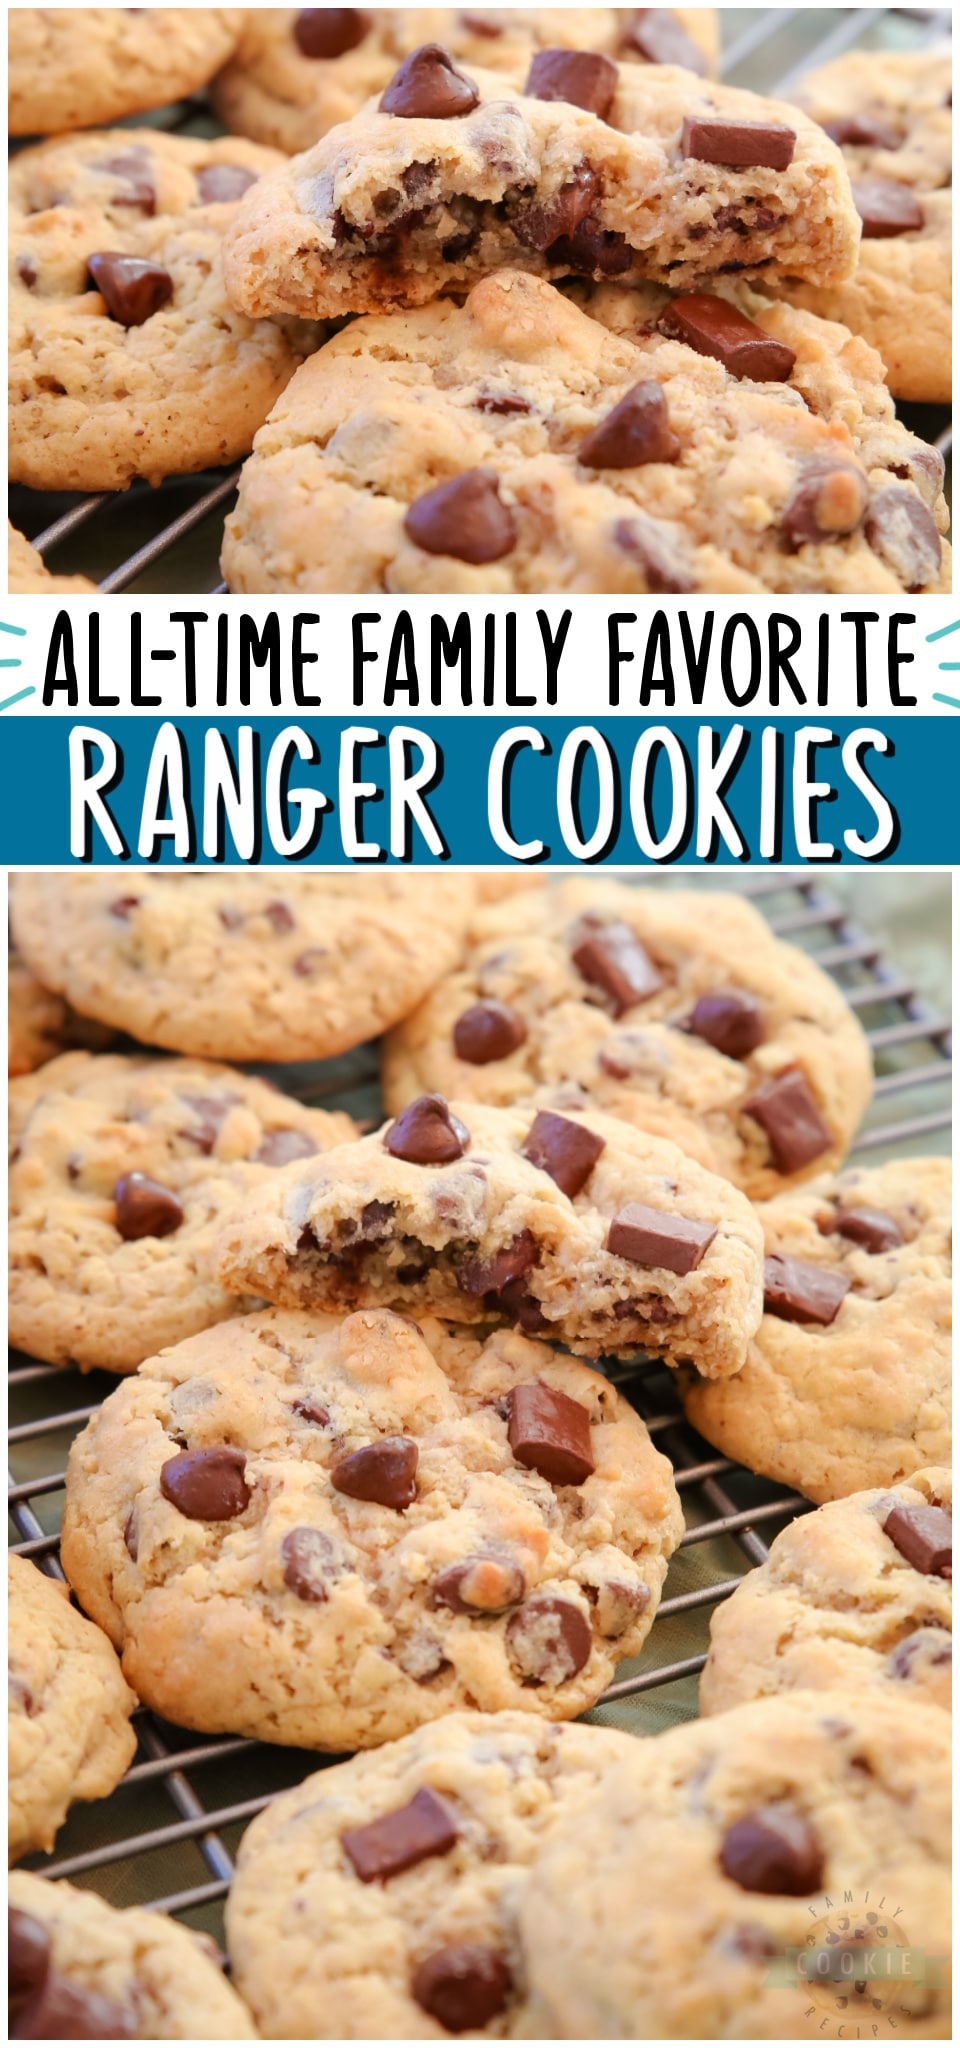 Simple Ranger Cookie recipe made with quick oats and lots of chocolate chips! Soft & chewy chocolate chip cookie with added oats for fantastic flavor & texture.